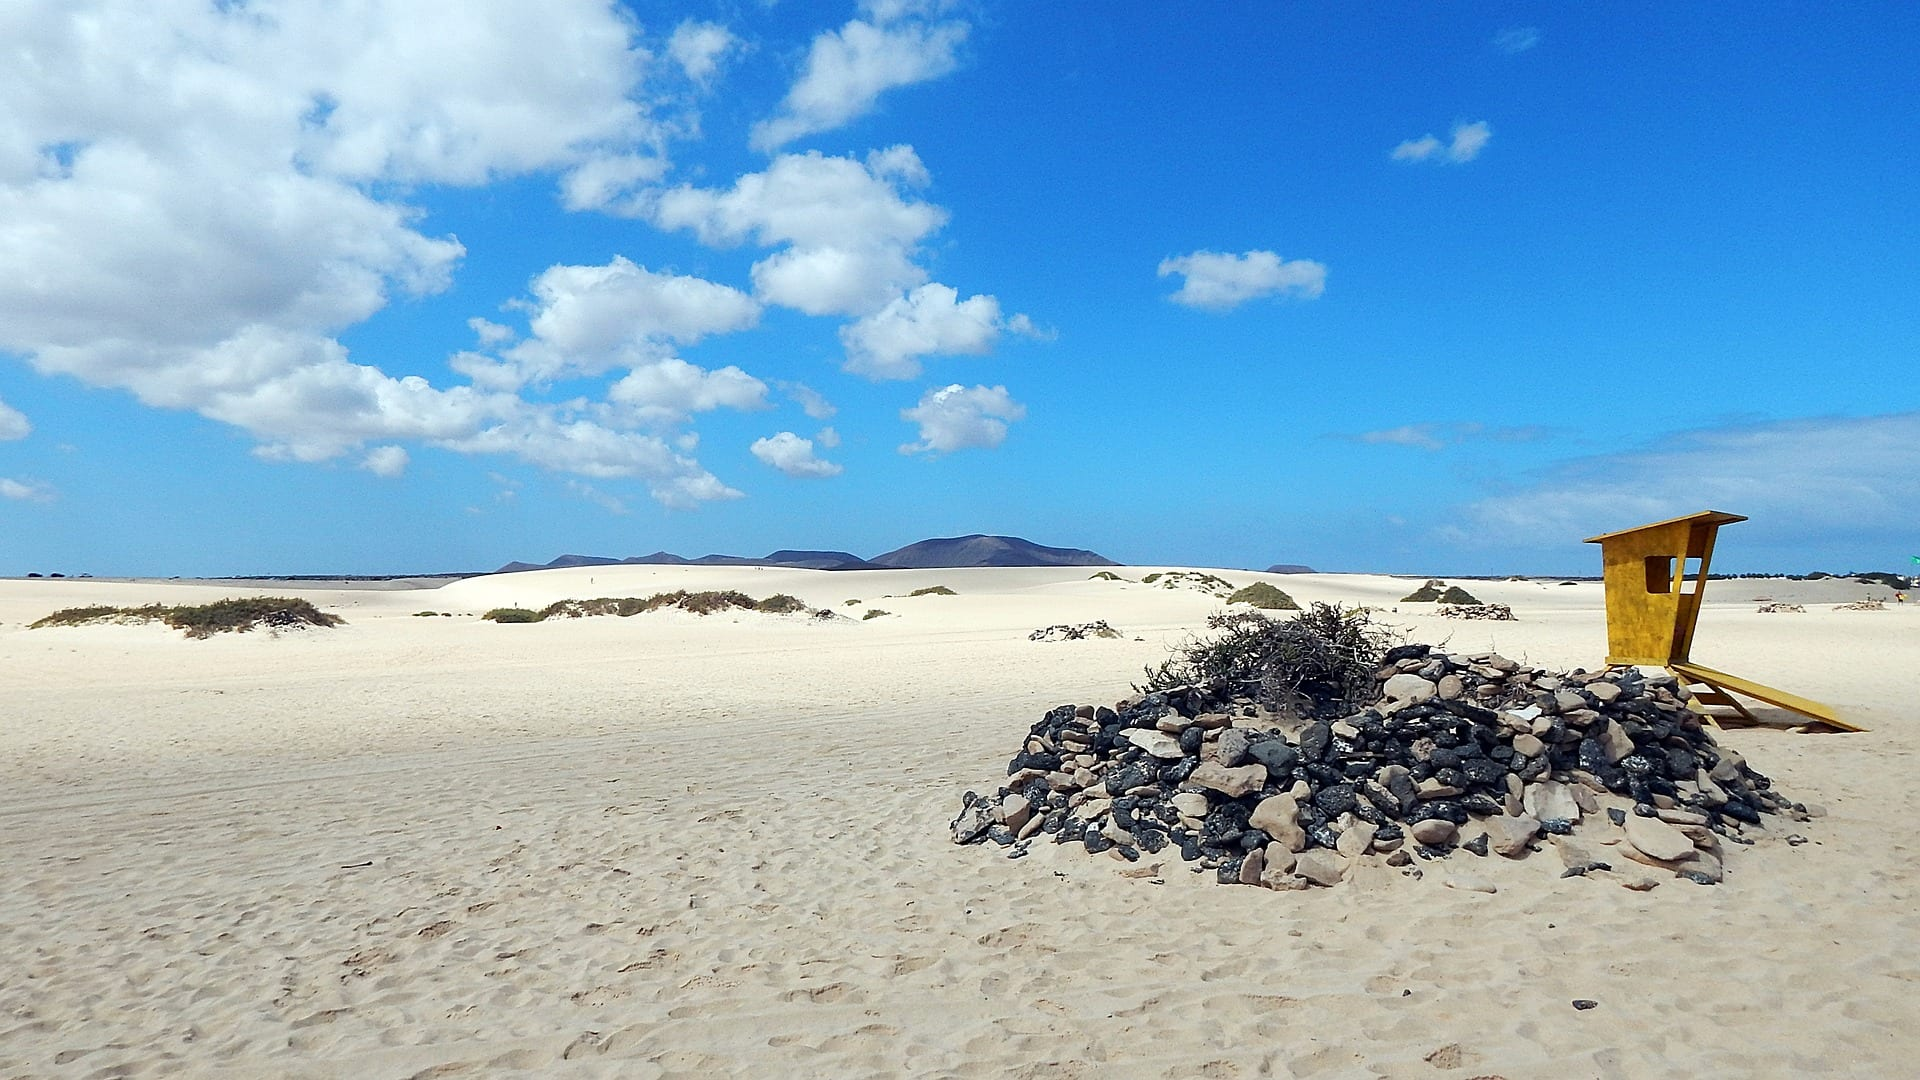 Fuerteventura is an ideal winter sun destination for people who love that remote feel